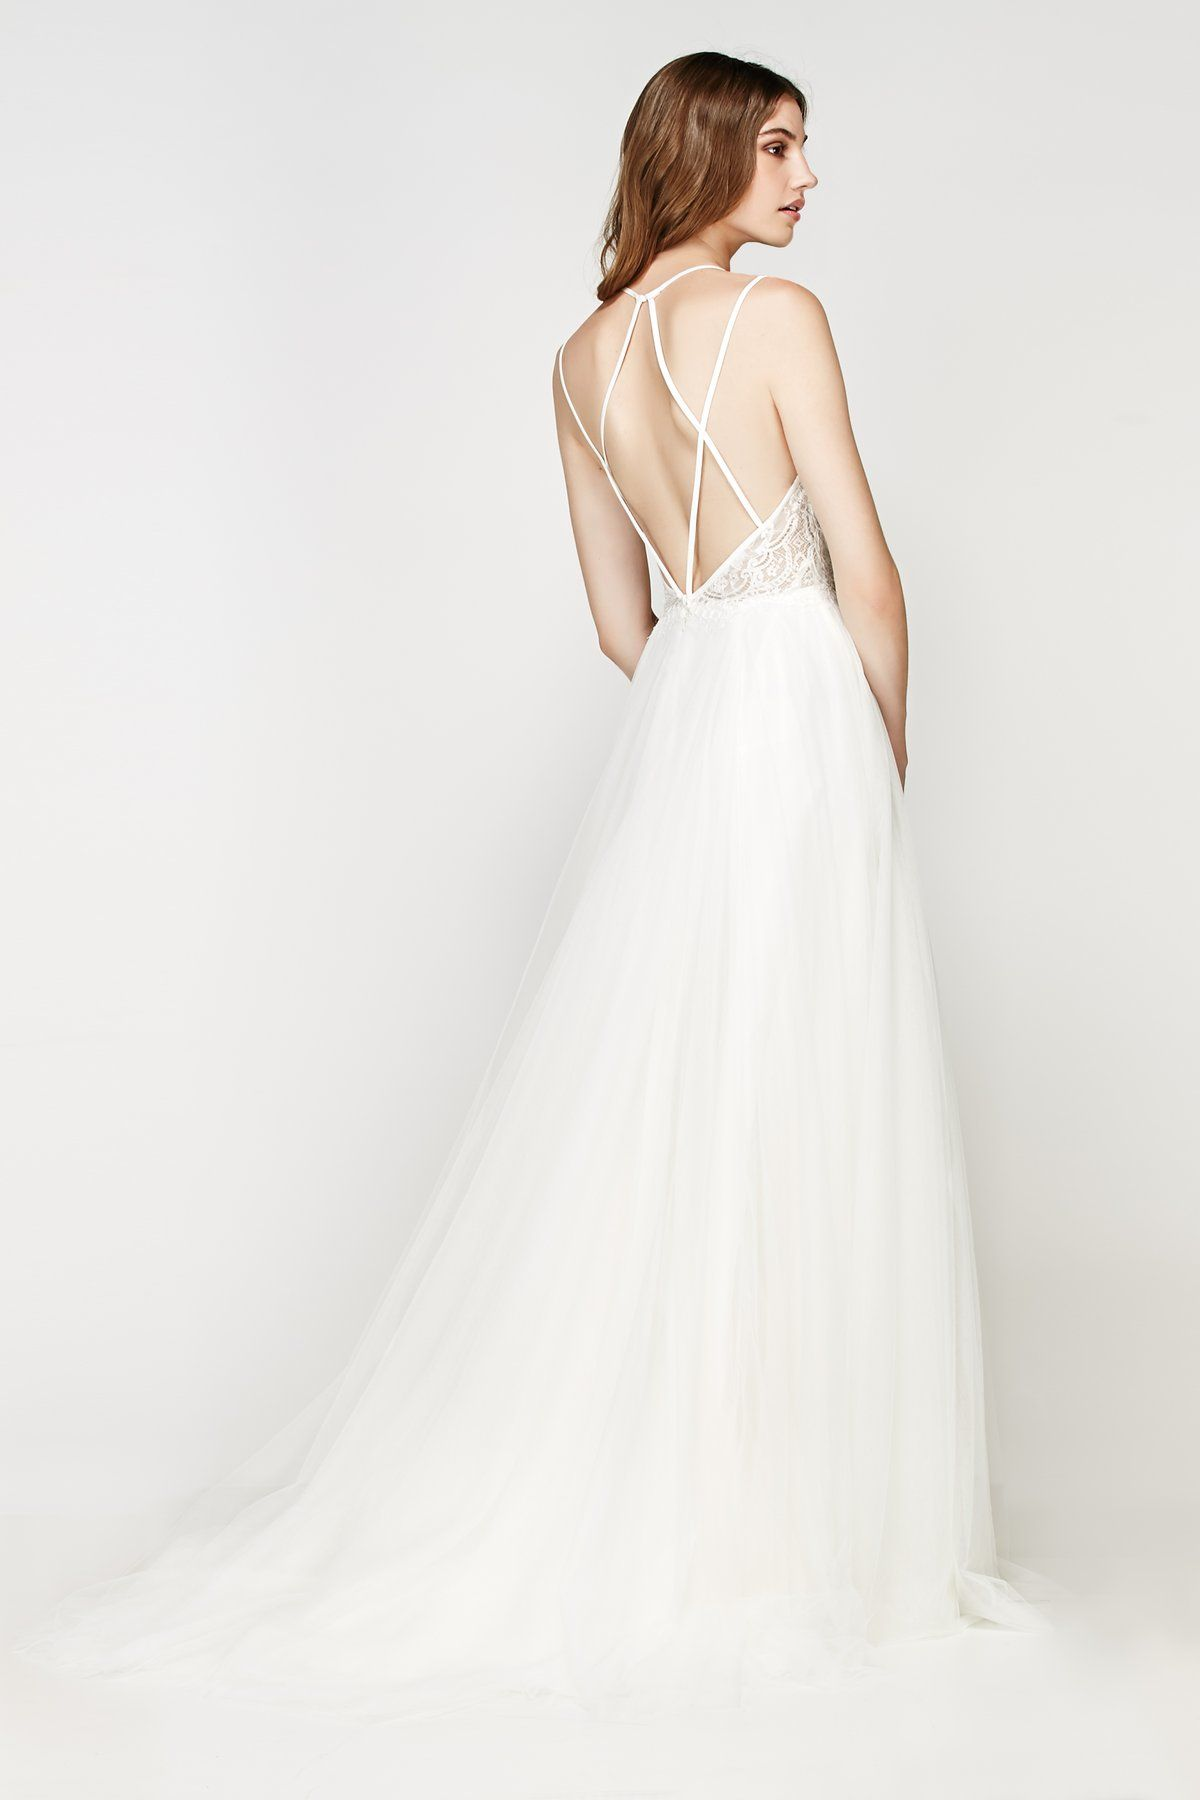 Madiera Gown From Willowby By Watters Is Available At Sincerely The Bride Vancouver Wa Portl Watters Wedding Dress Wedding Gown Backless A Line Wedding Dress